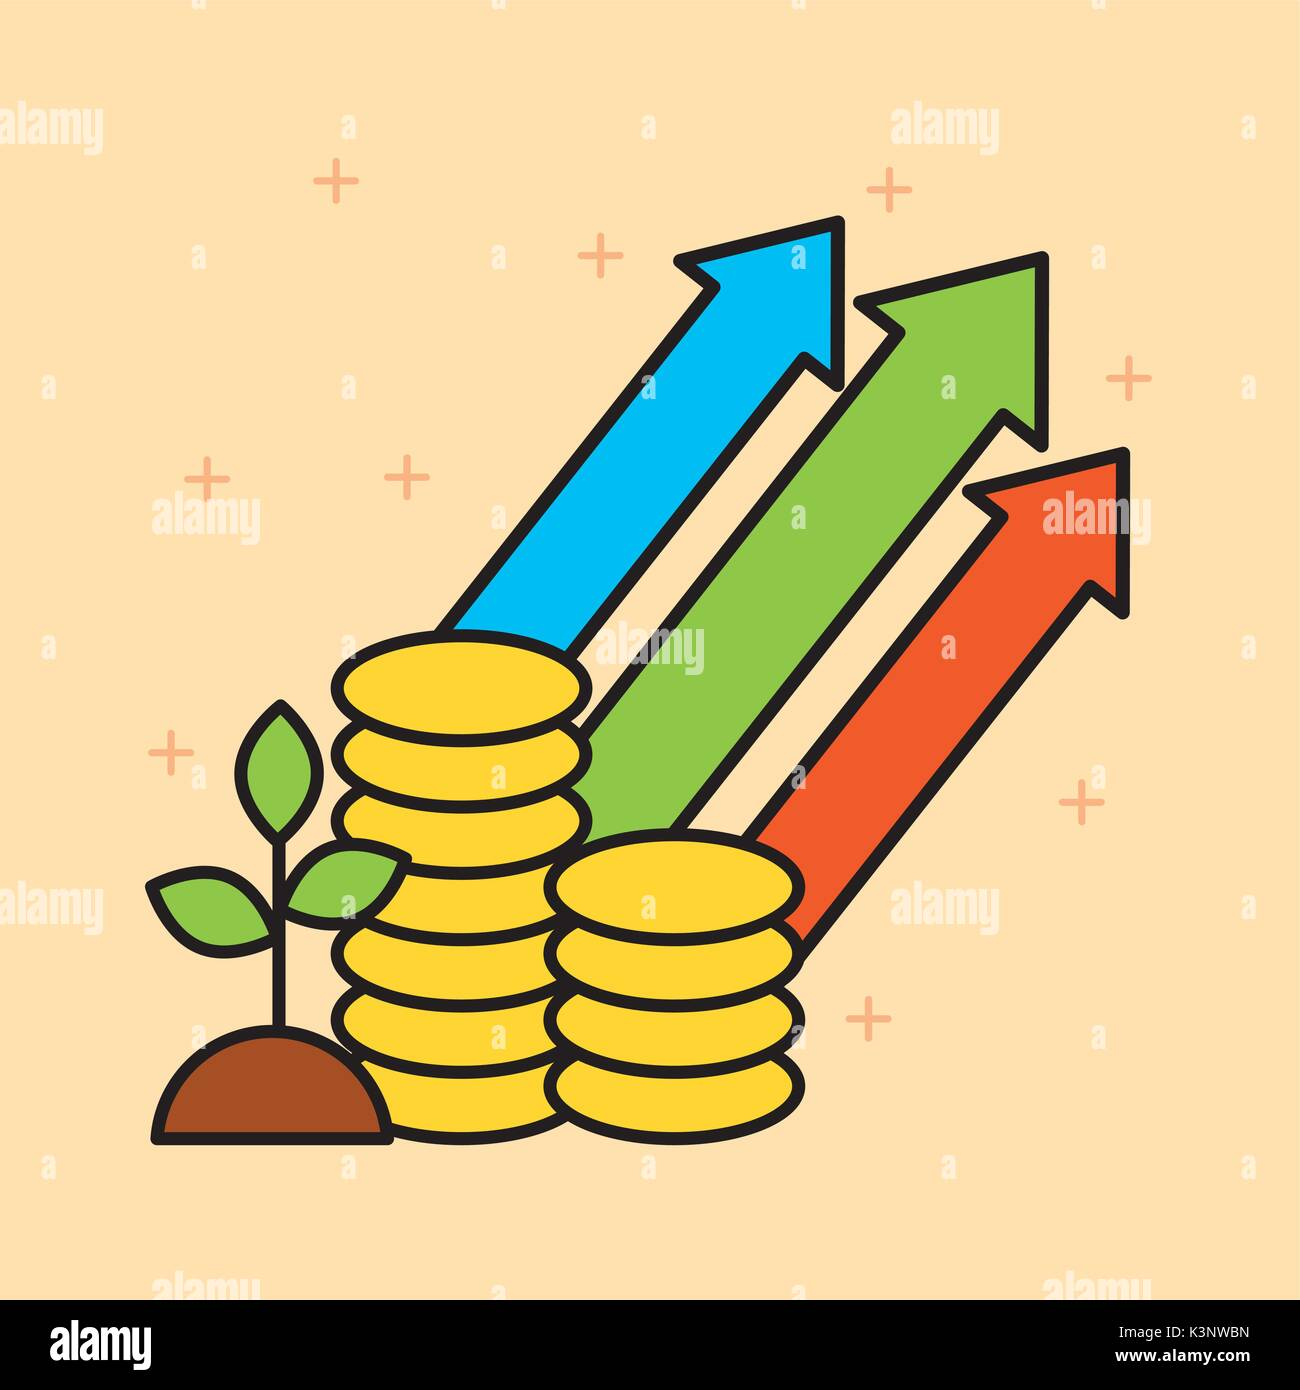 set of finance and business growth investing concepts - Stock Image